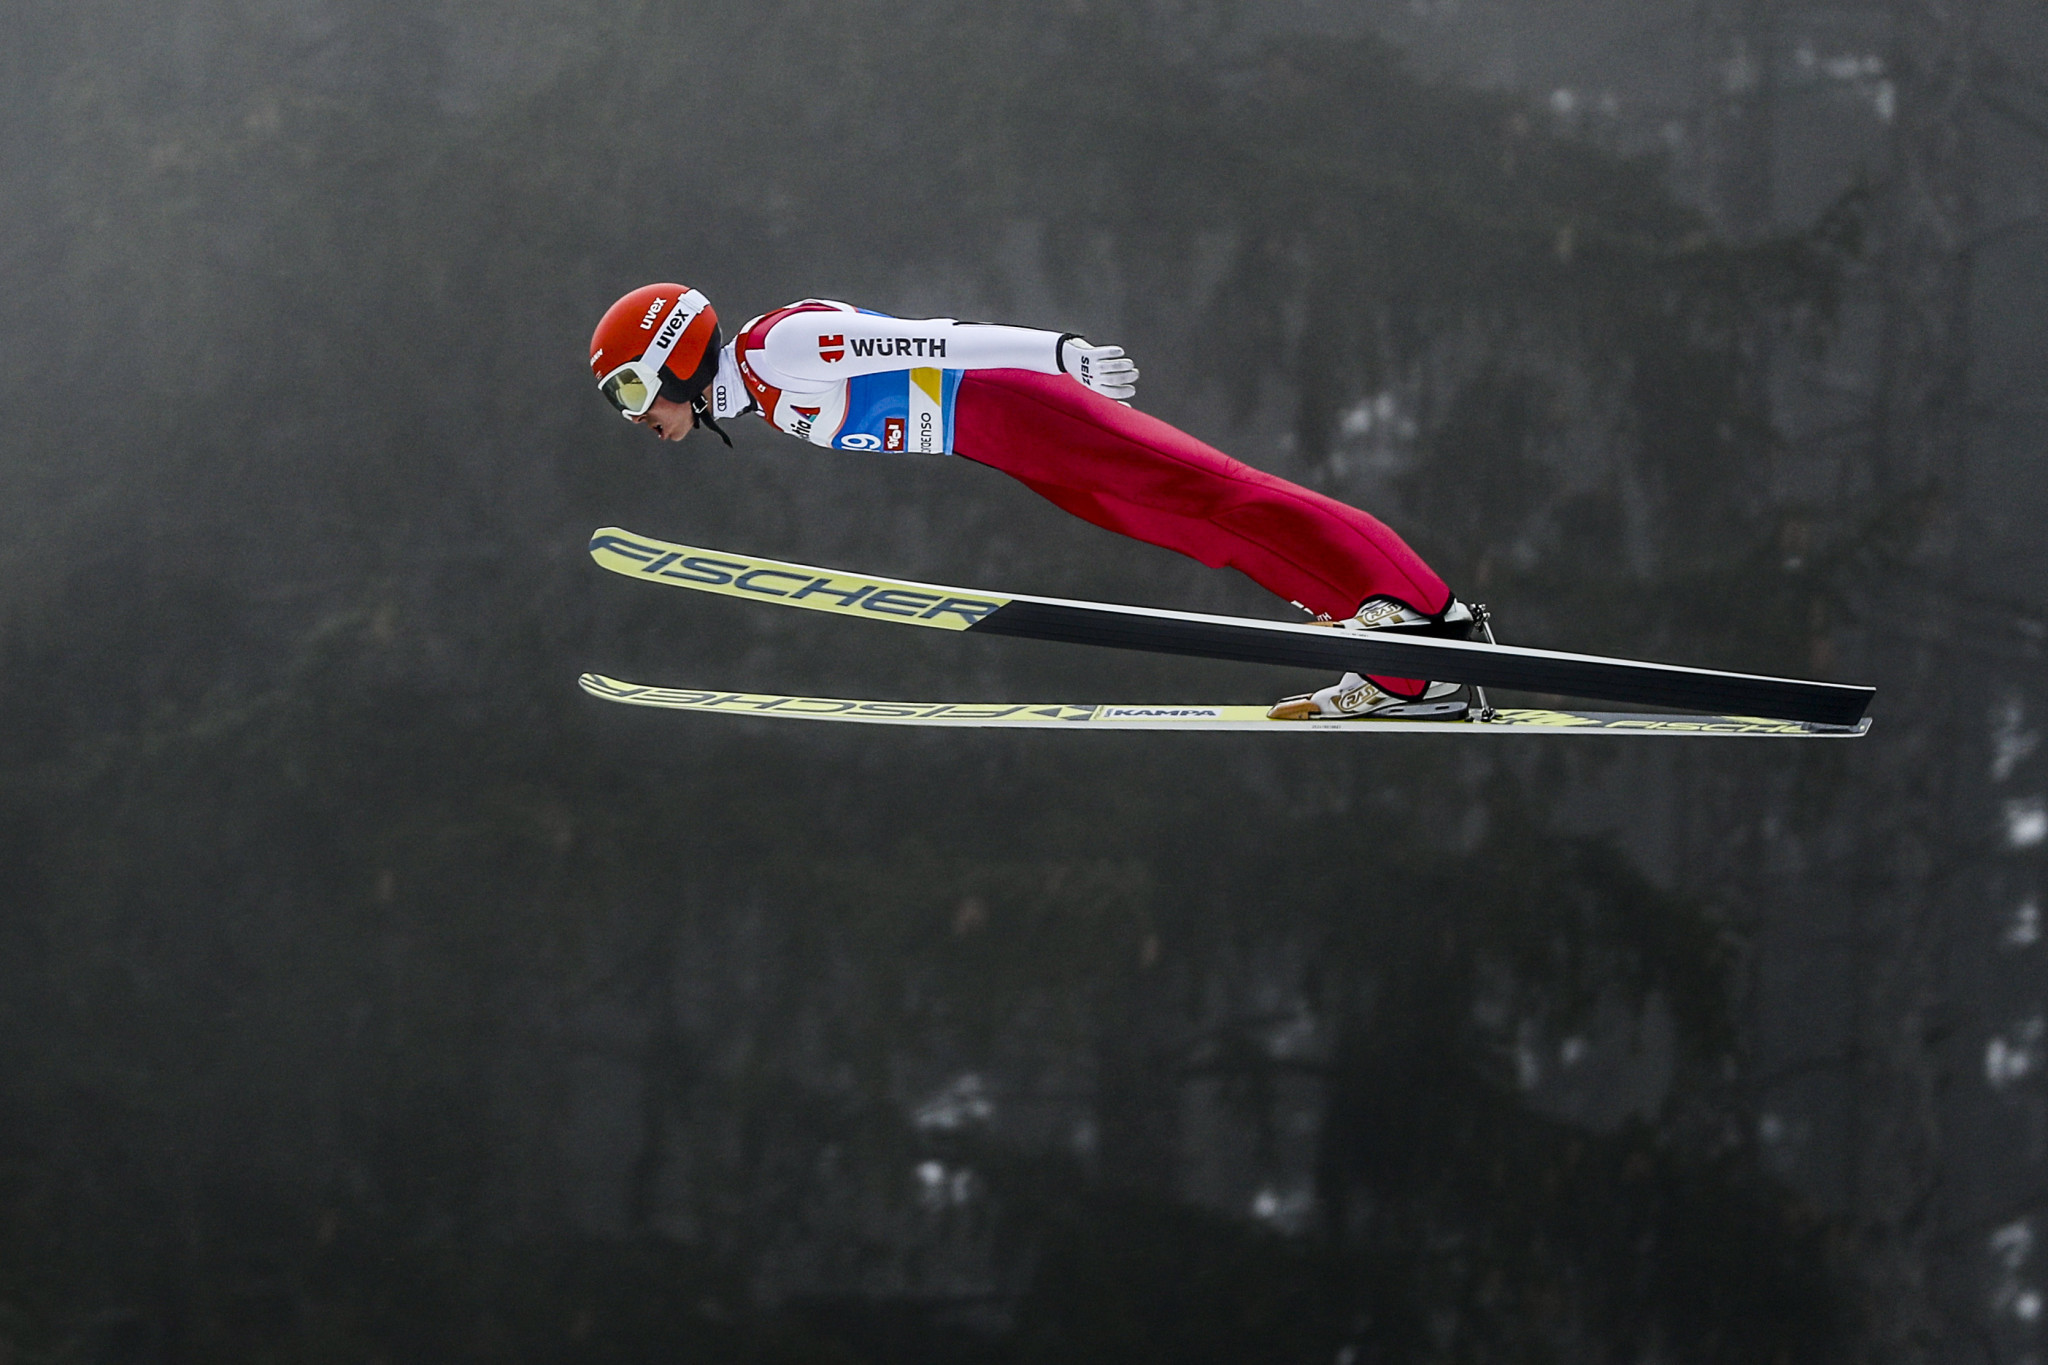 Frenzel achieved the highest score in the ski jumping to give him an advantage going into the cross-country in the Nordic combined individual 10km final ©Getty Images